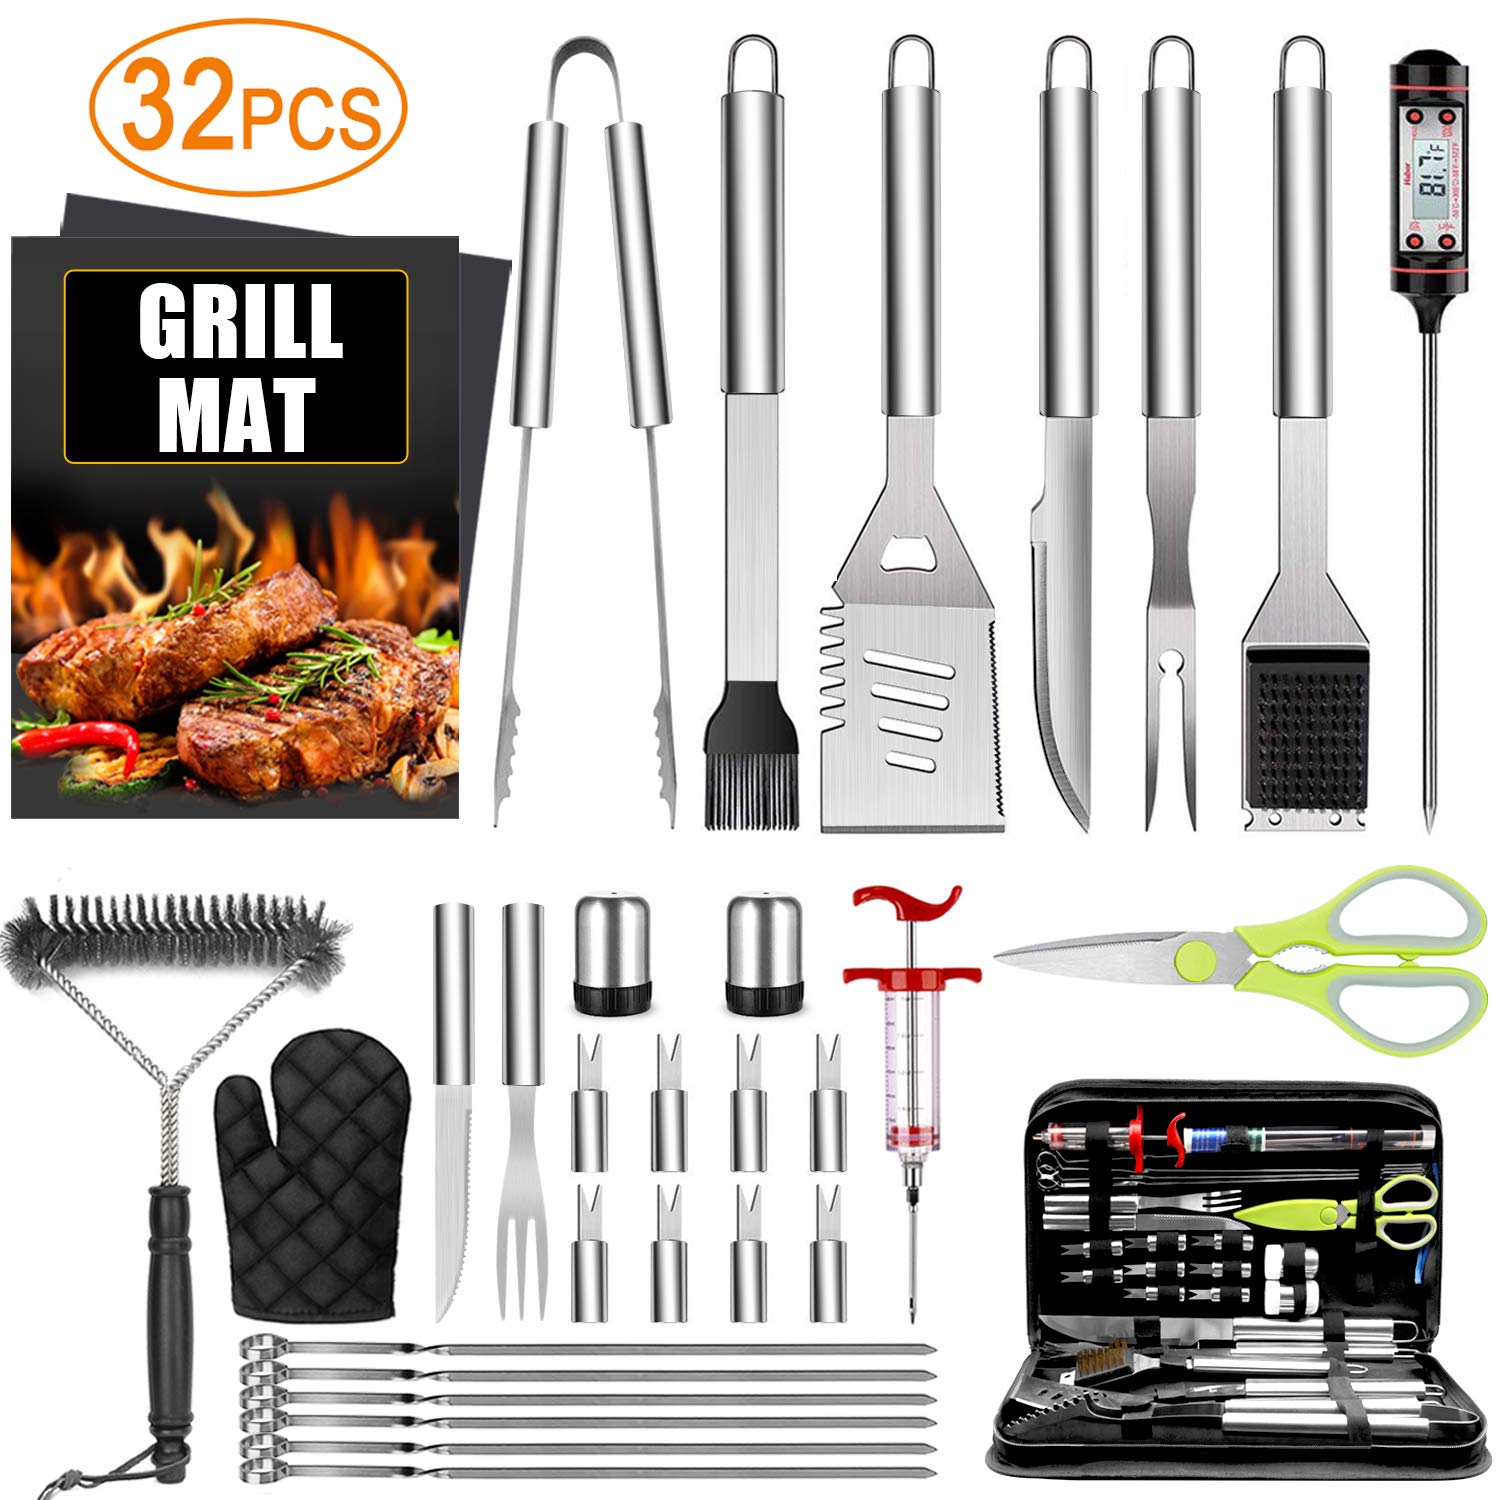 32PCS BBQ Grill Accessories Tools Set, Stainless Steel Grilling Tools with Carry Bag, Thermometer, Grill Mats for Camping Backyard Barbecue, Grill Tools Set for Men Women